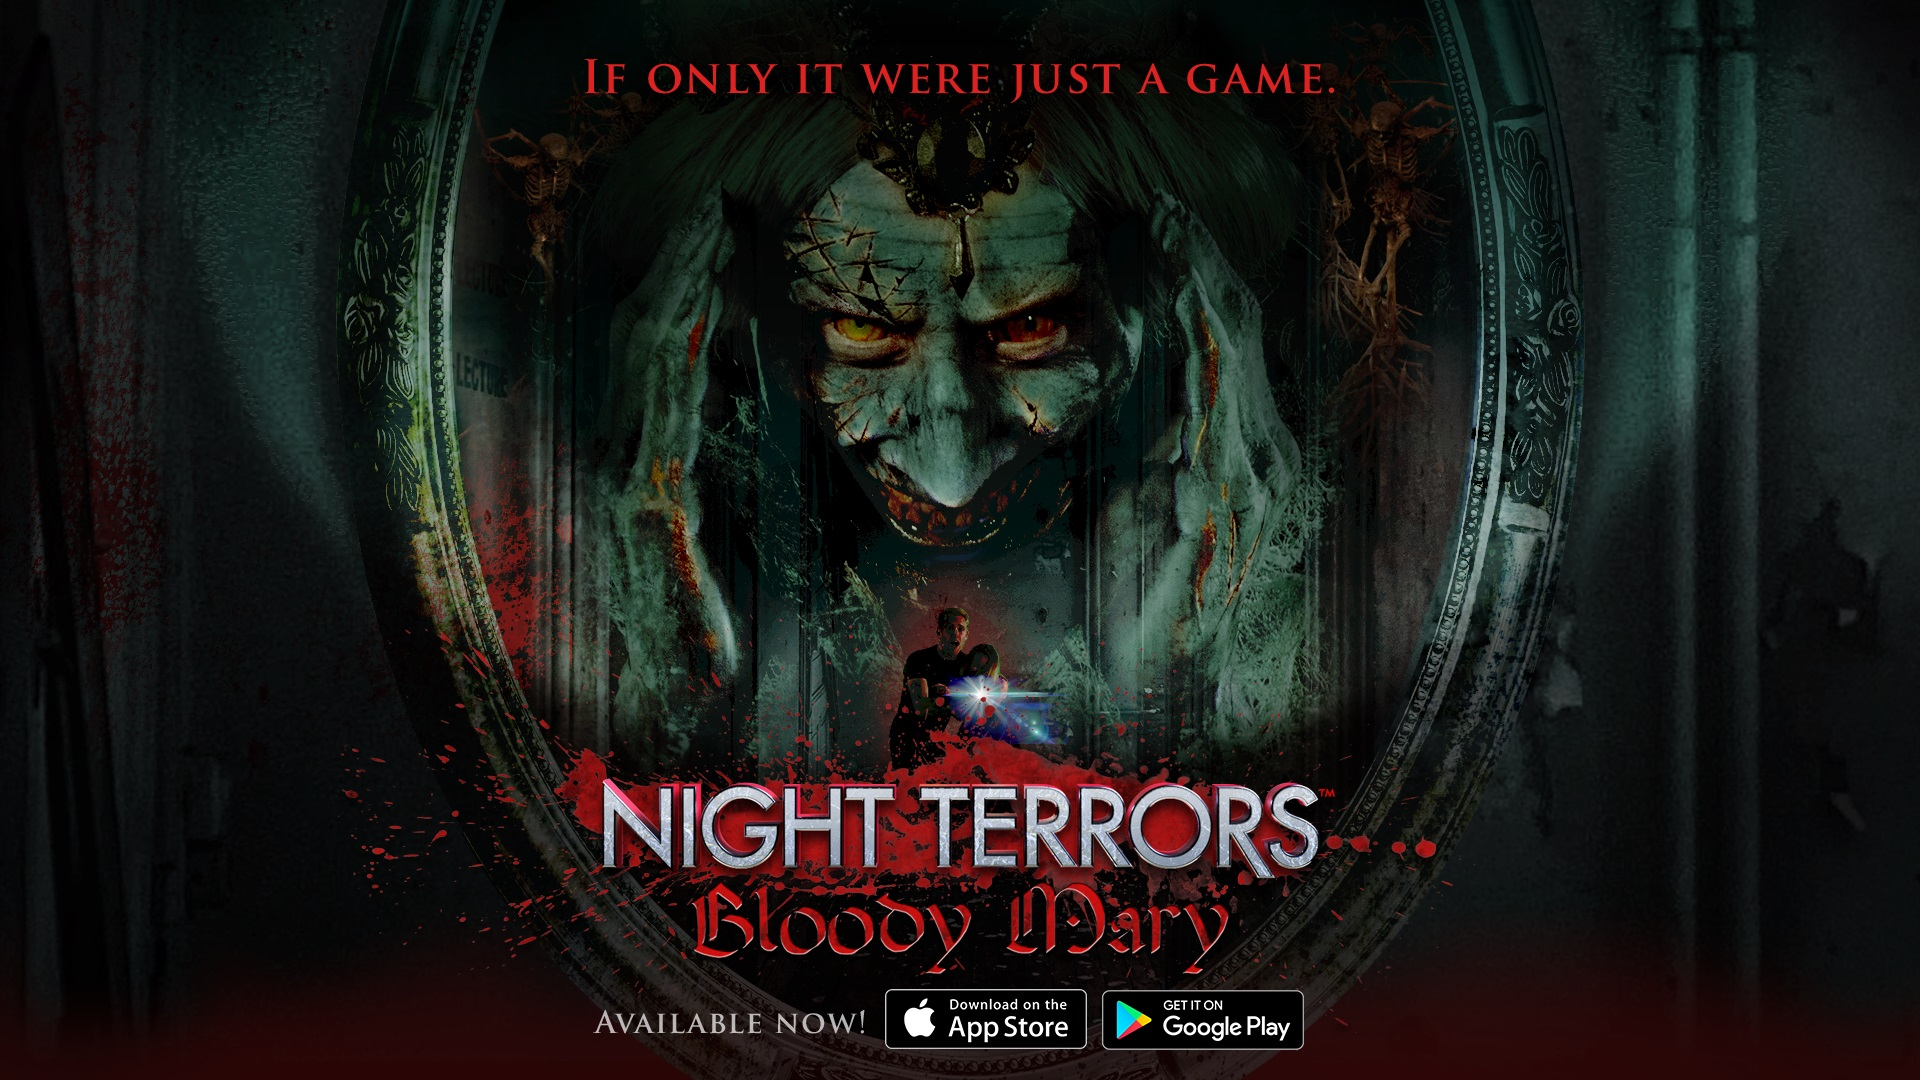 Night Terrors: Bloody Mary Is An AR Horror Game From Paranormal Activity's  Creator